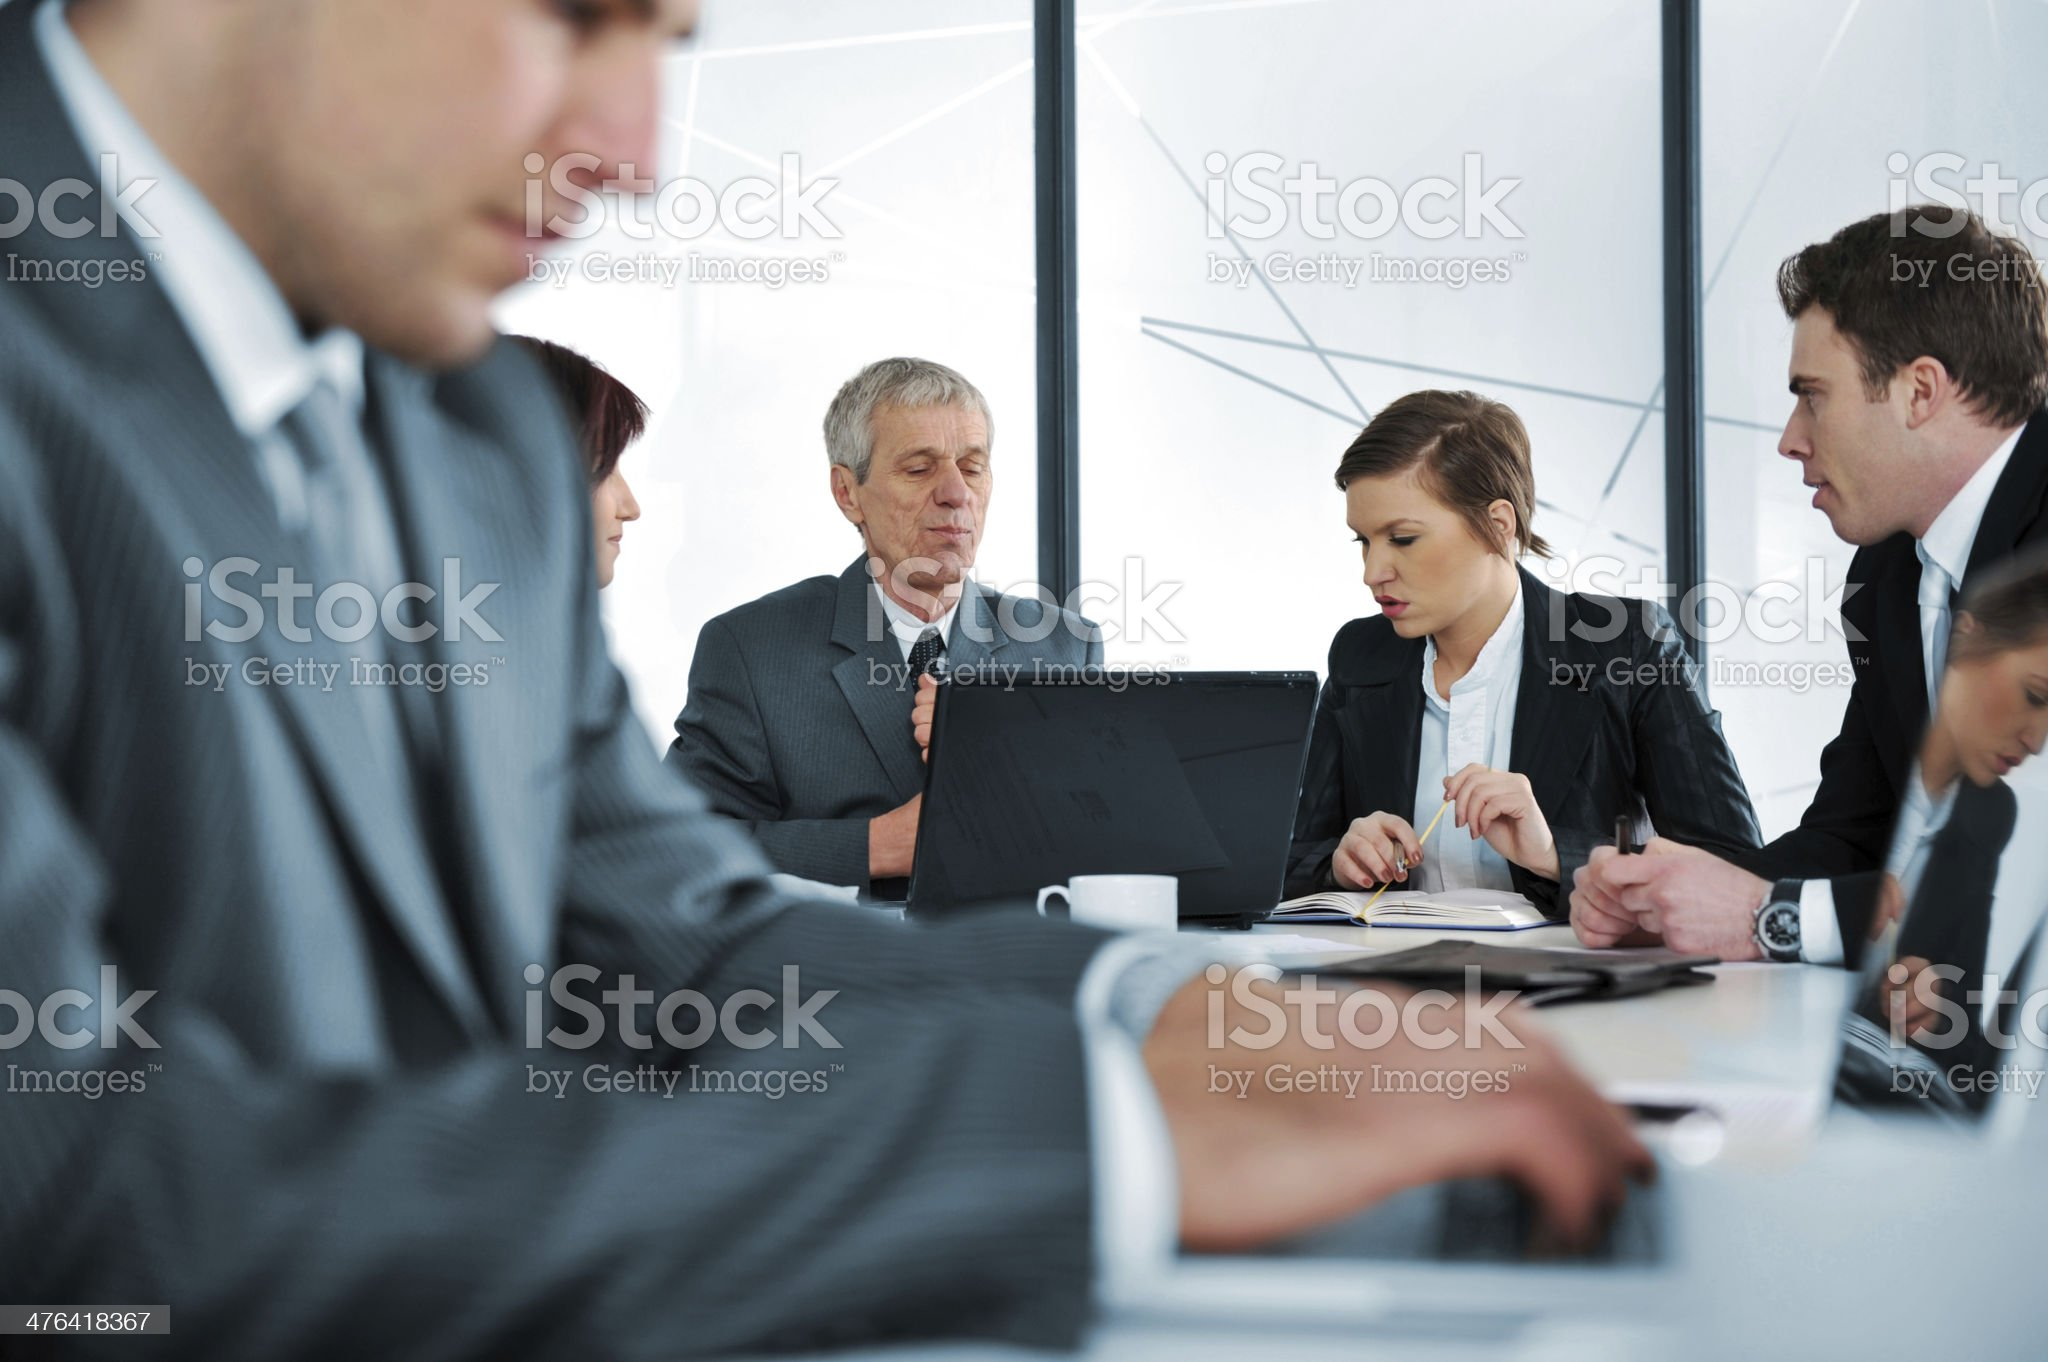 Typing business report on laptop at office meeting royalty-free stock photo